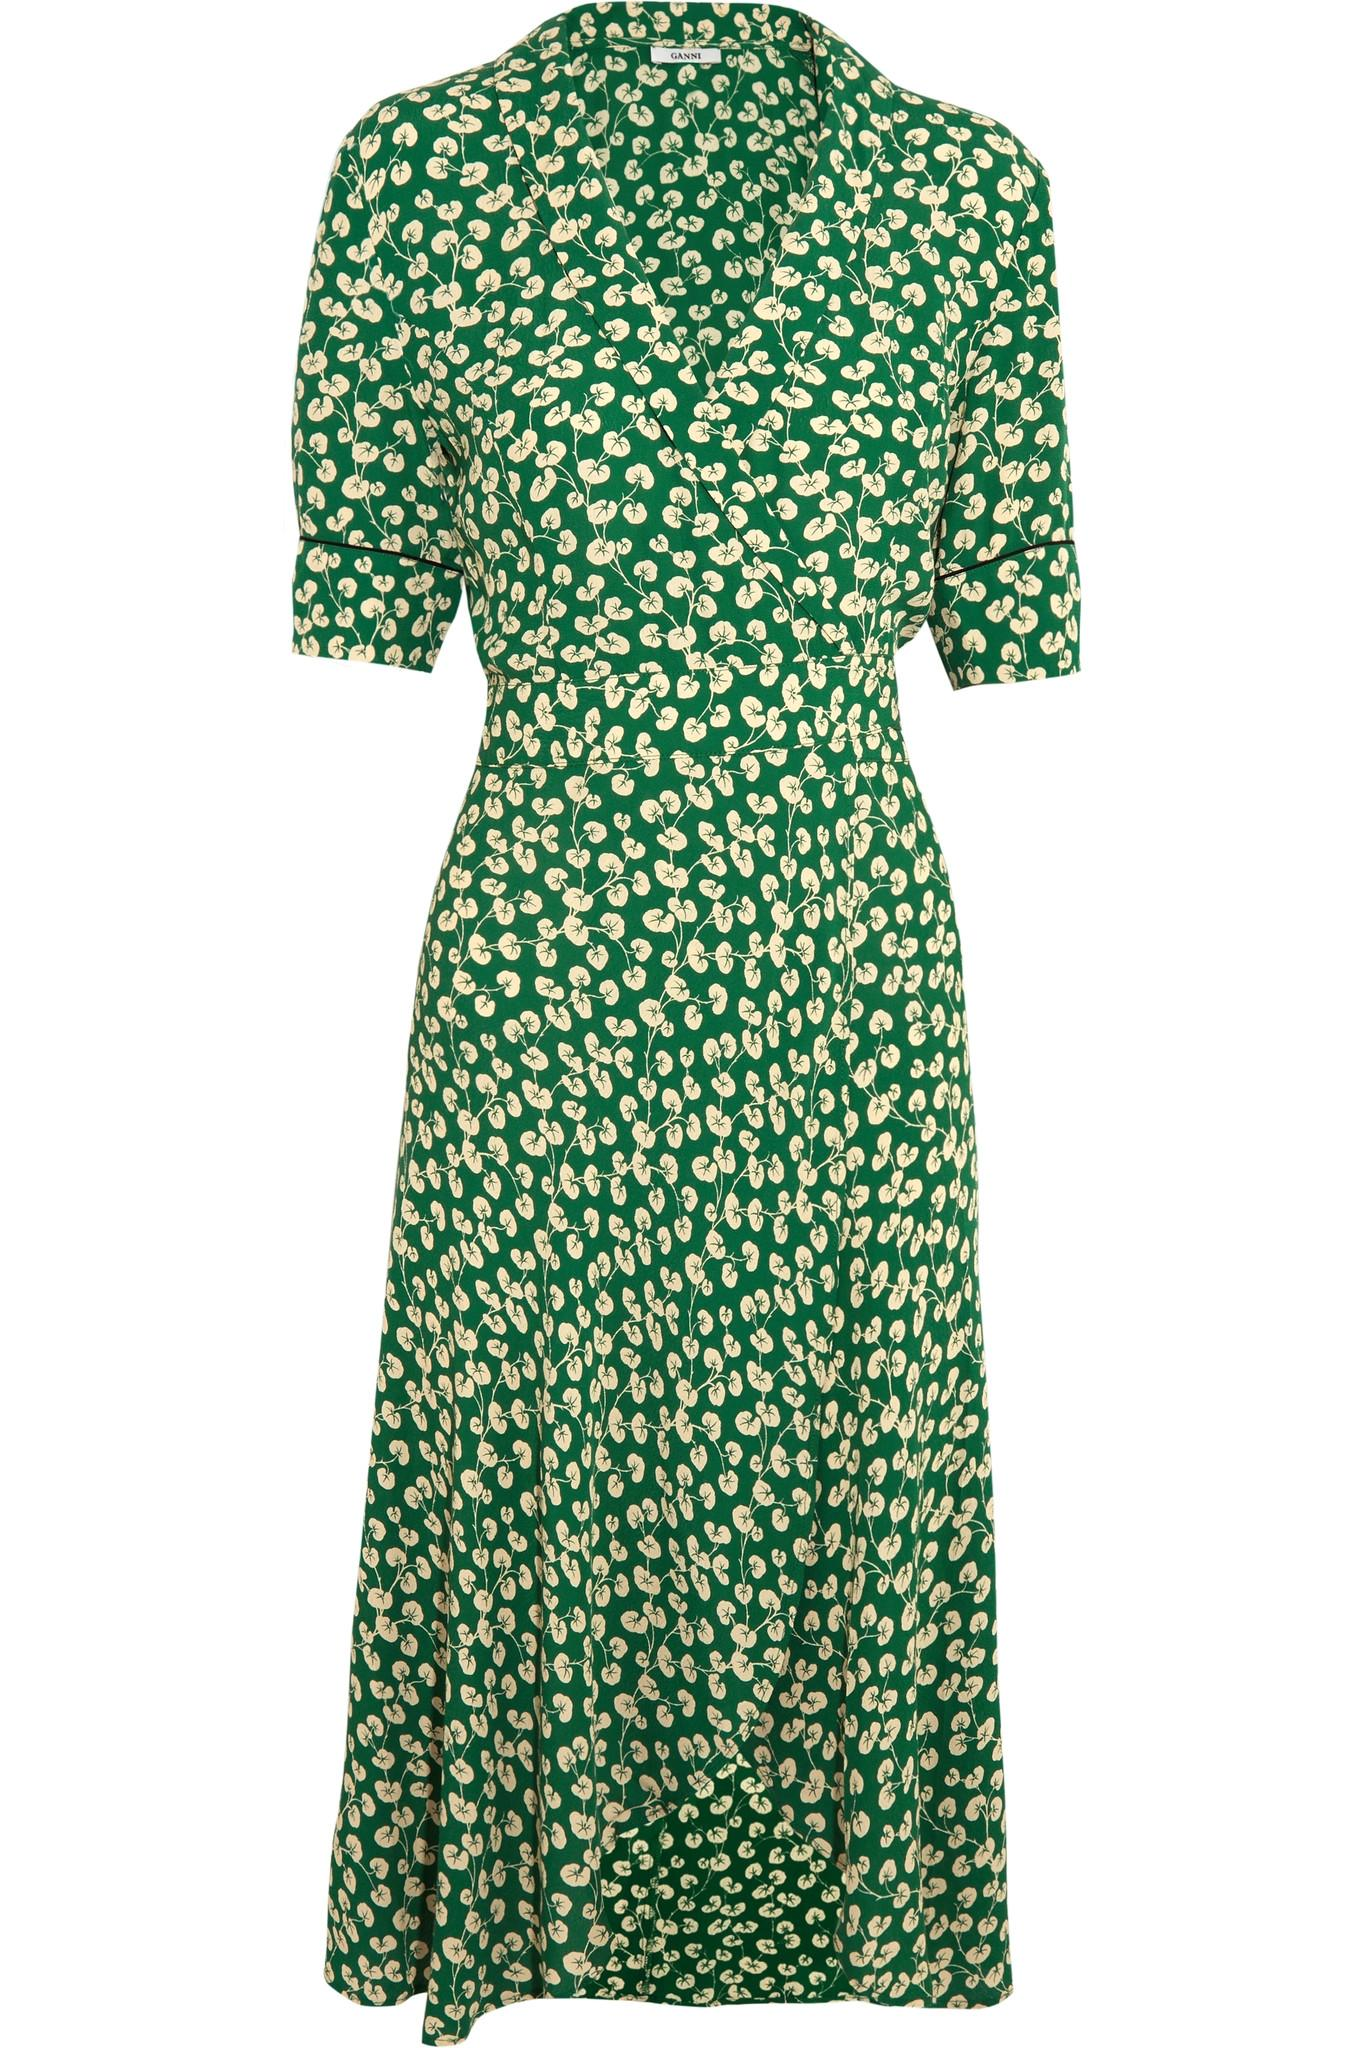 iPhone designer iphone cases : Ganni Dalton Floral-print Crepe Wrap Dress in Green : Lyst